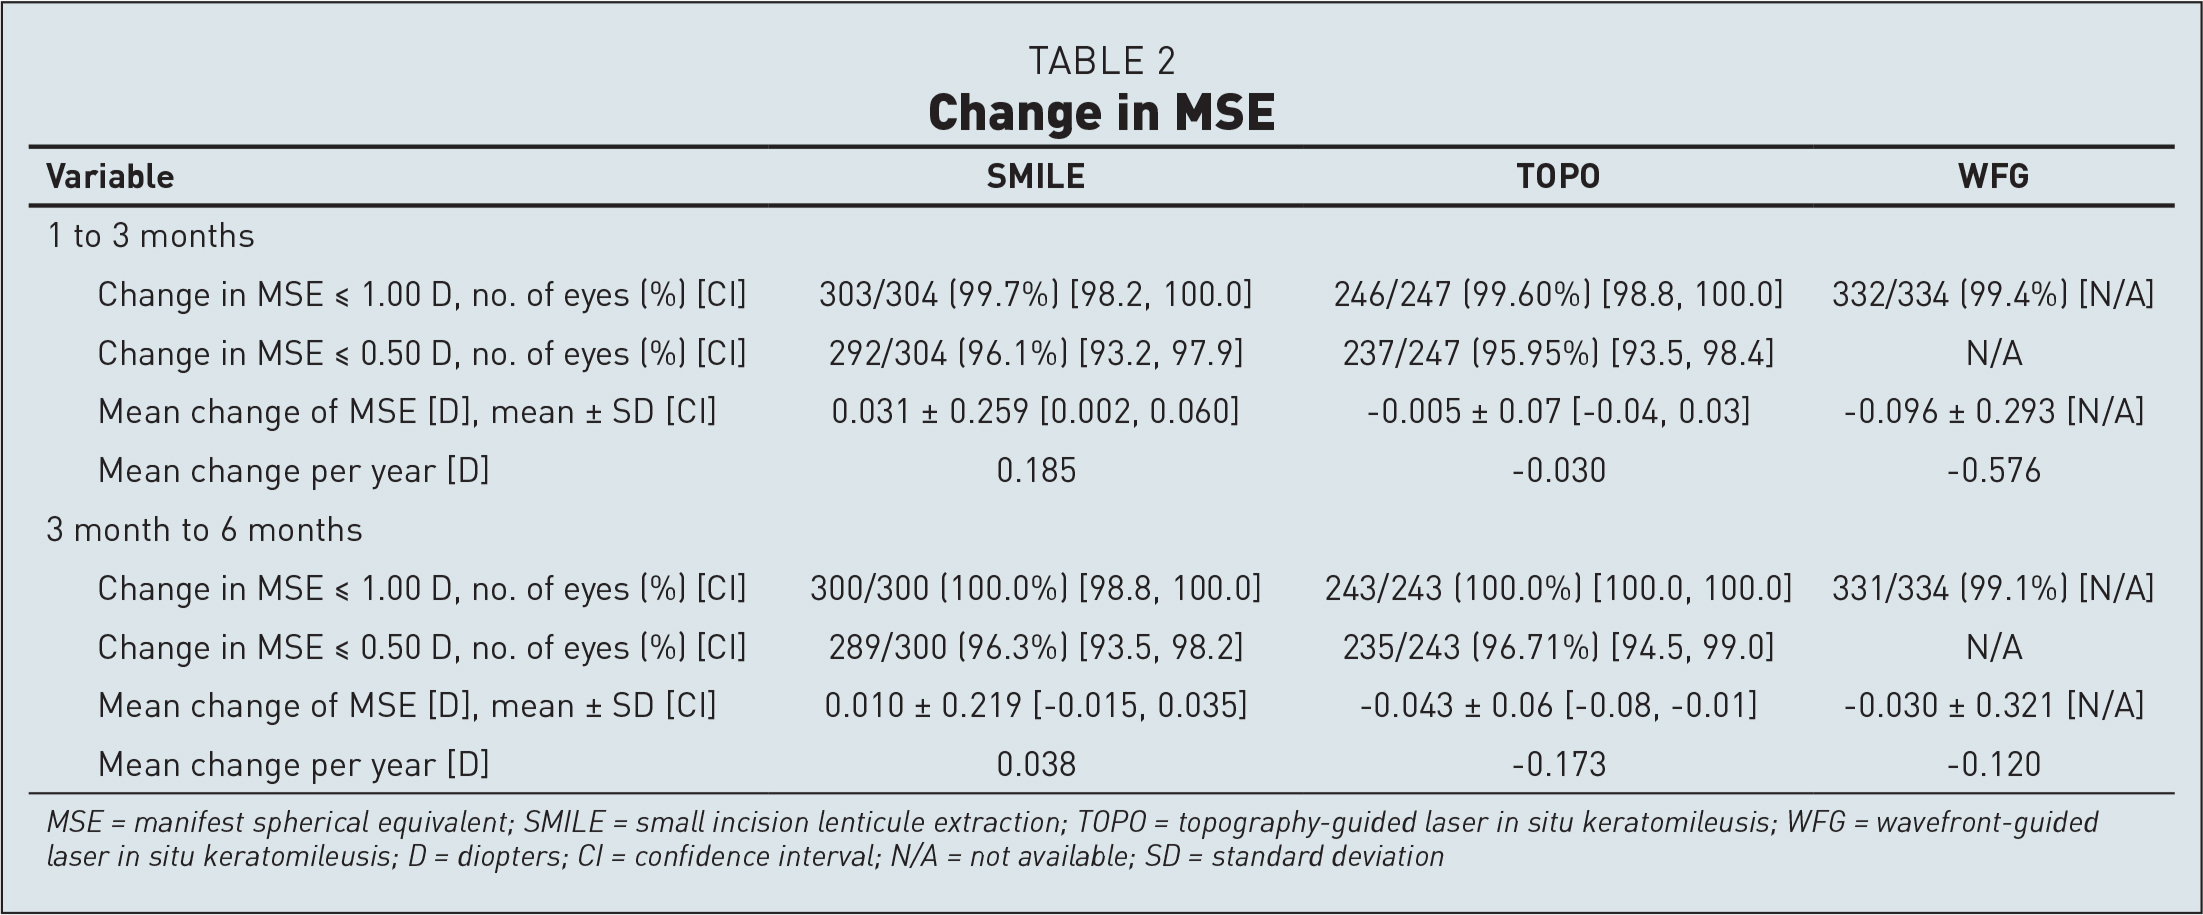 Change in MSE